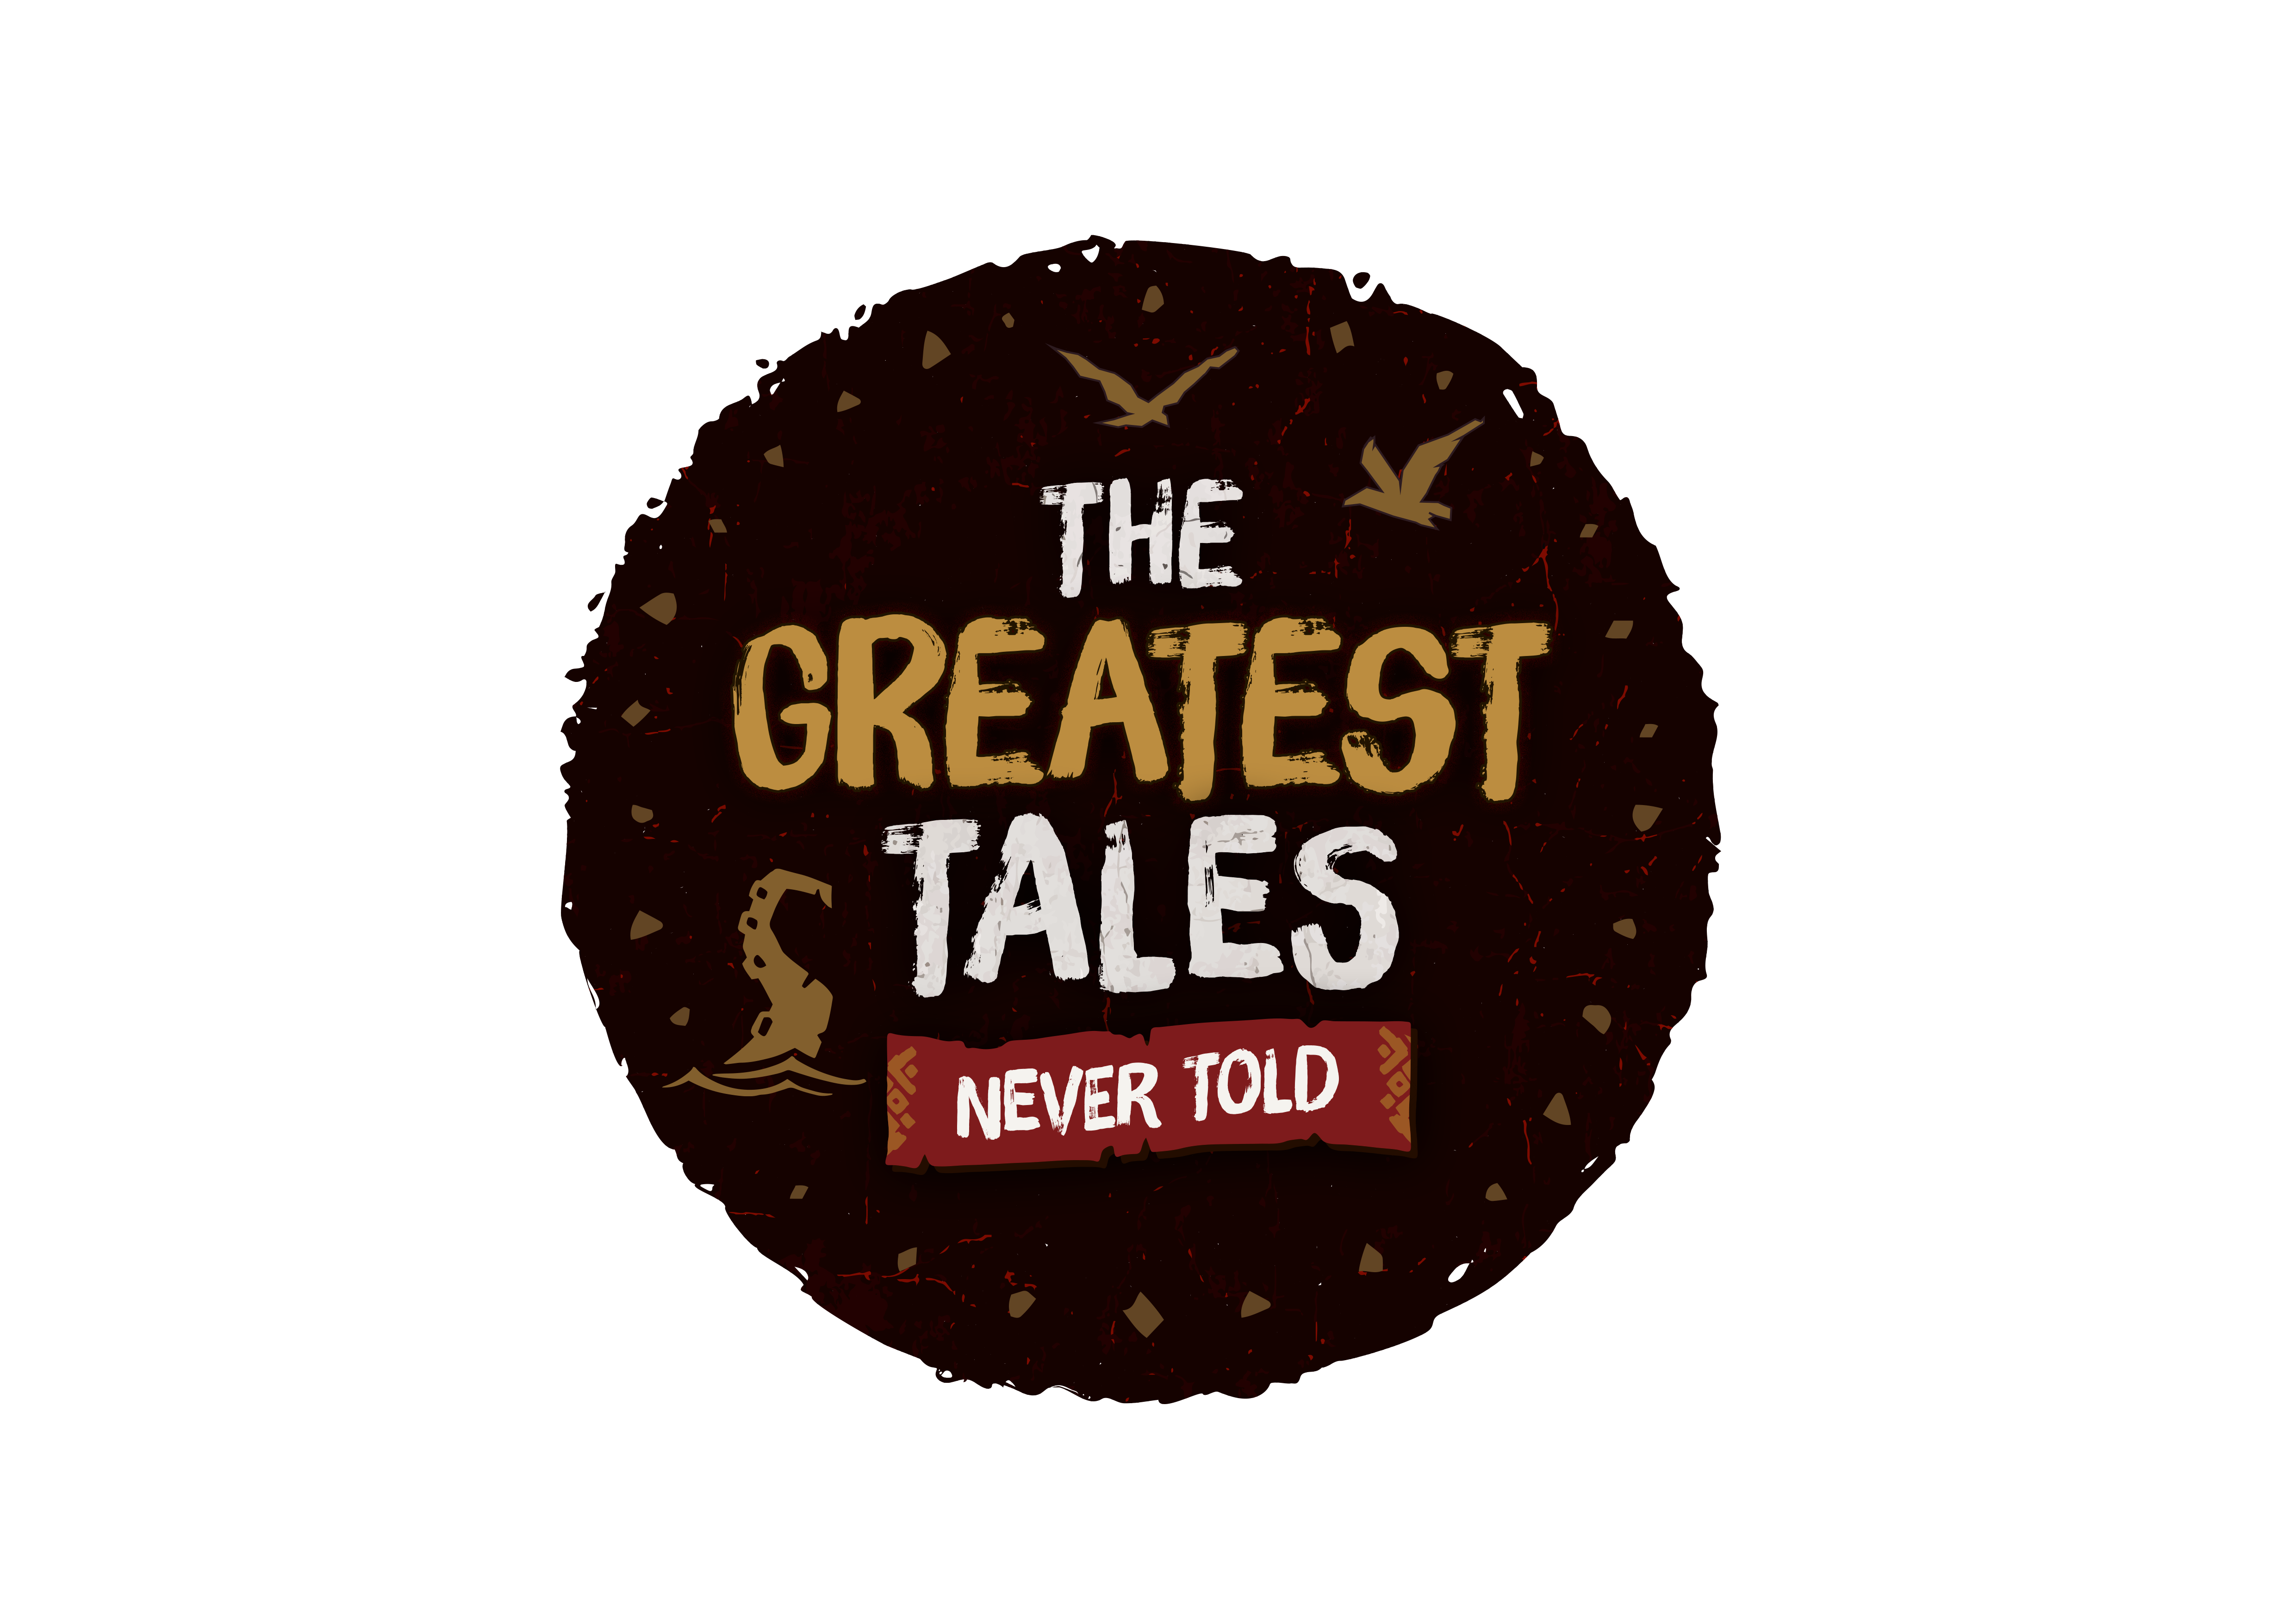 The Greatest Tales Never Told